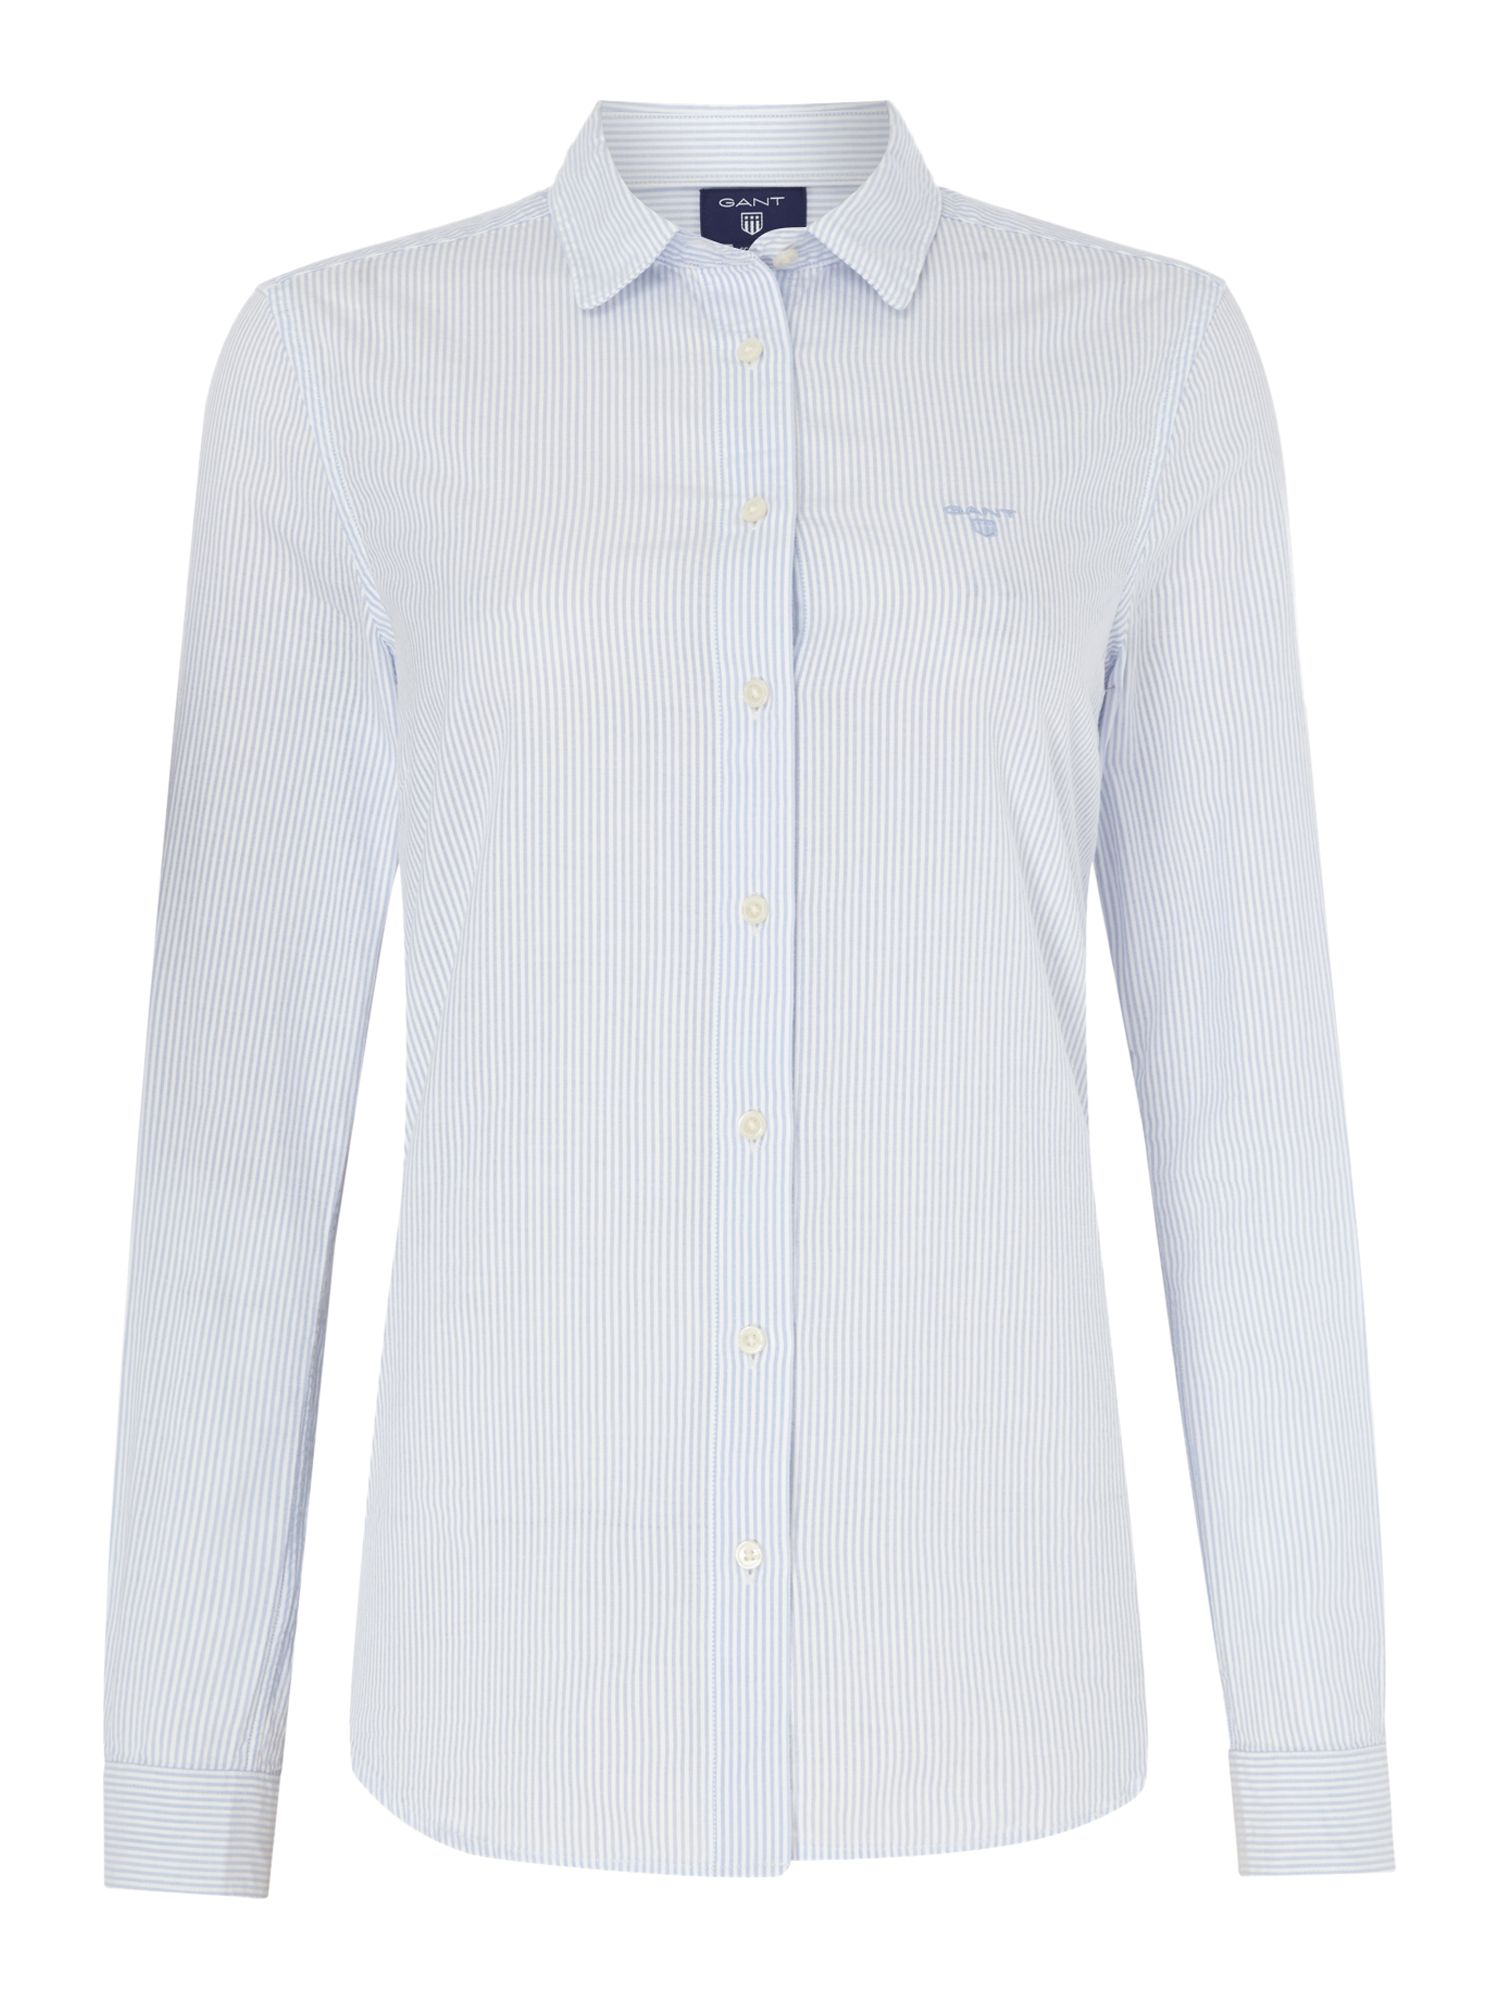 Gant Seersucker shirt, Light Blue